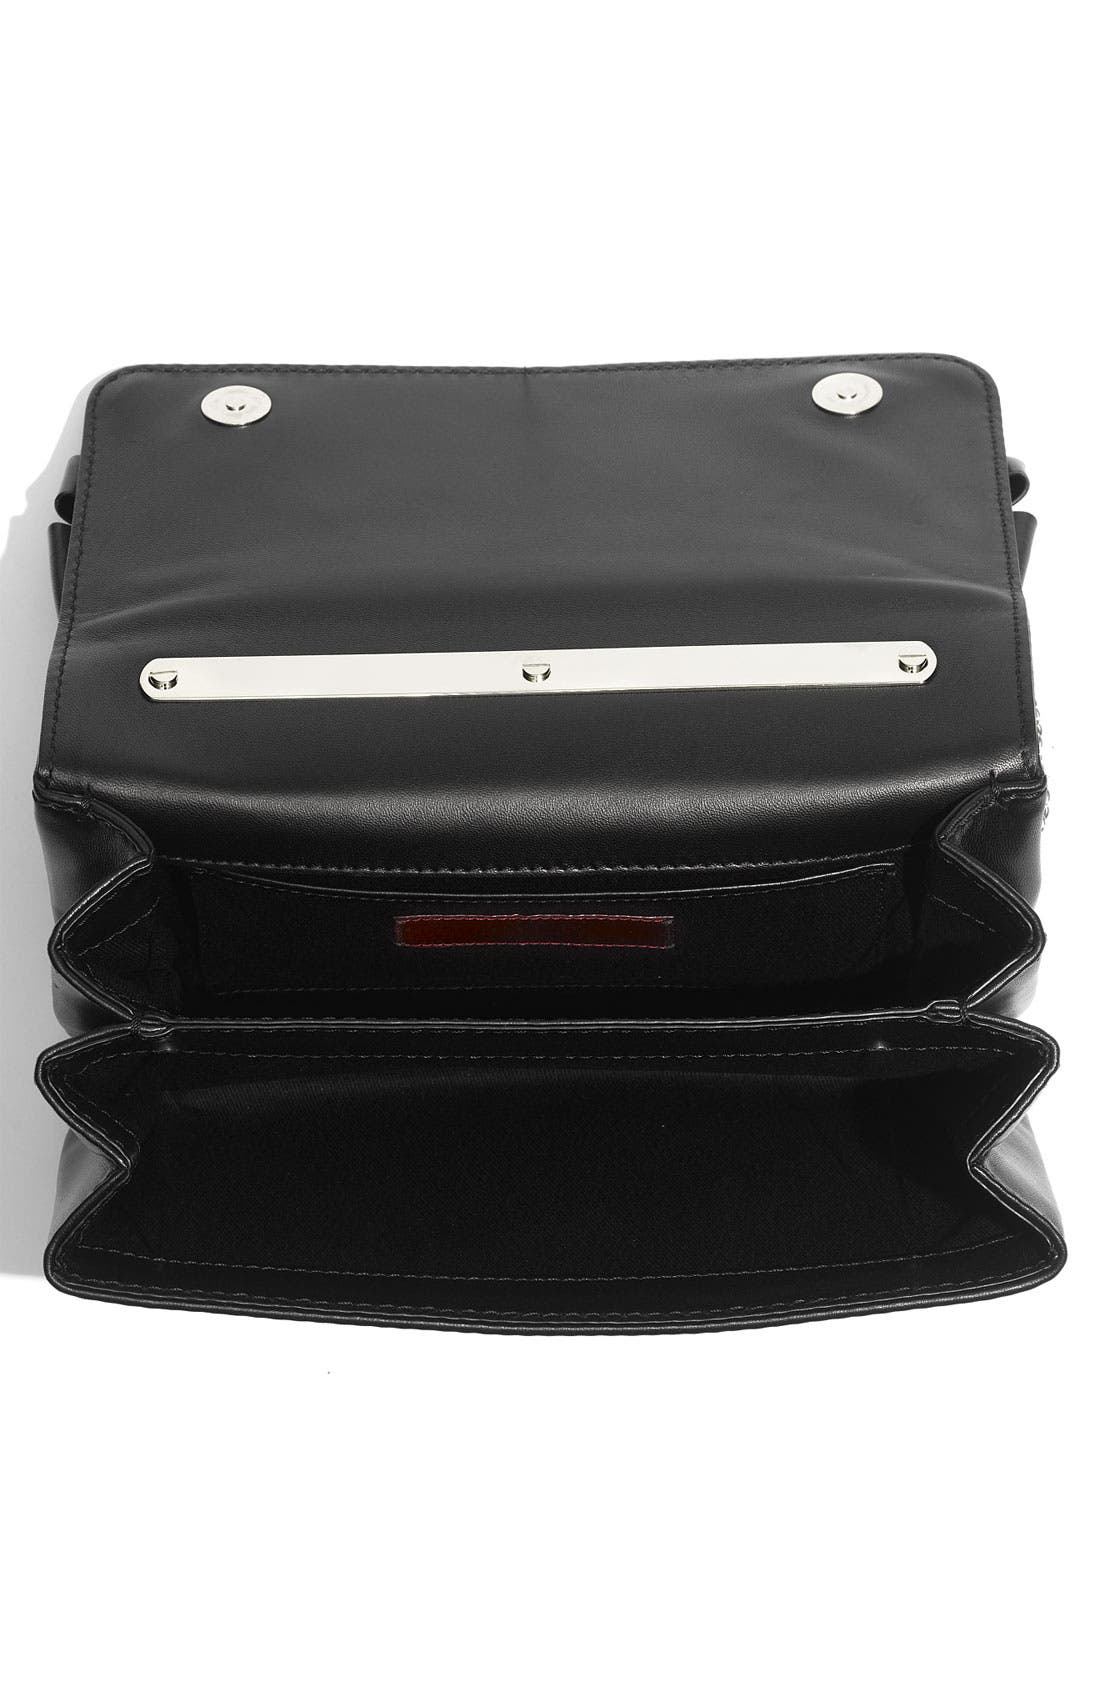 Alternate Image 3  - Valentino 'Bow Flap' Leather Shoulder Bag